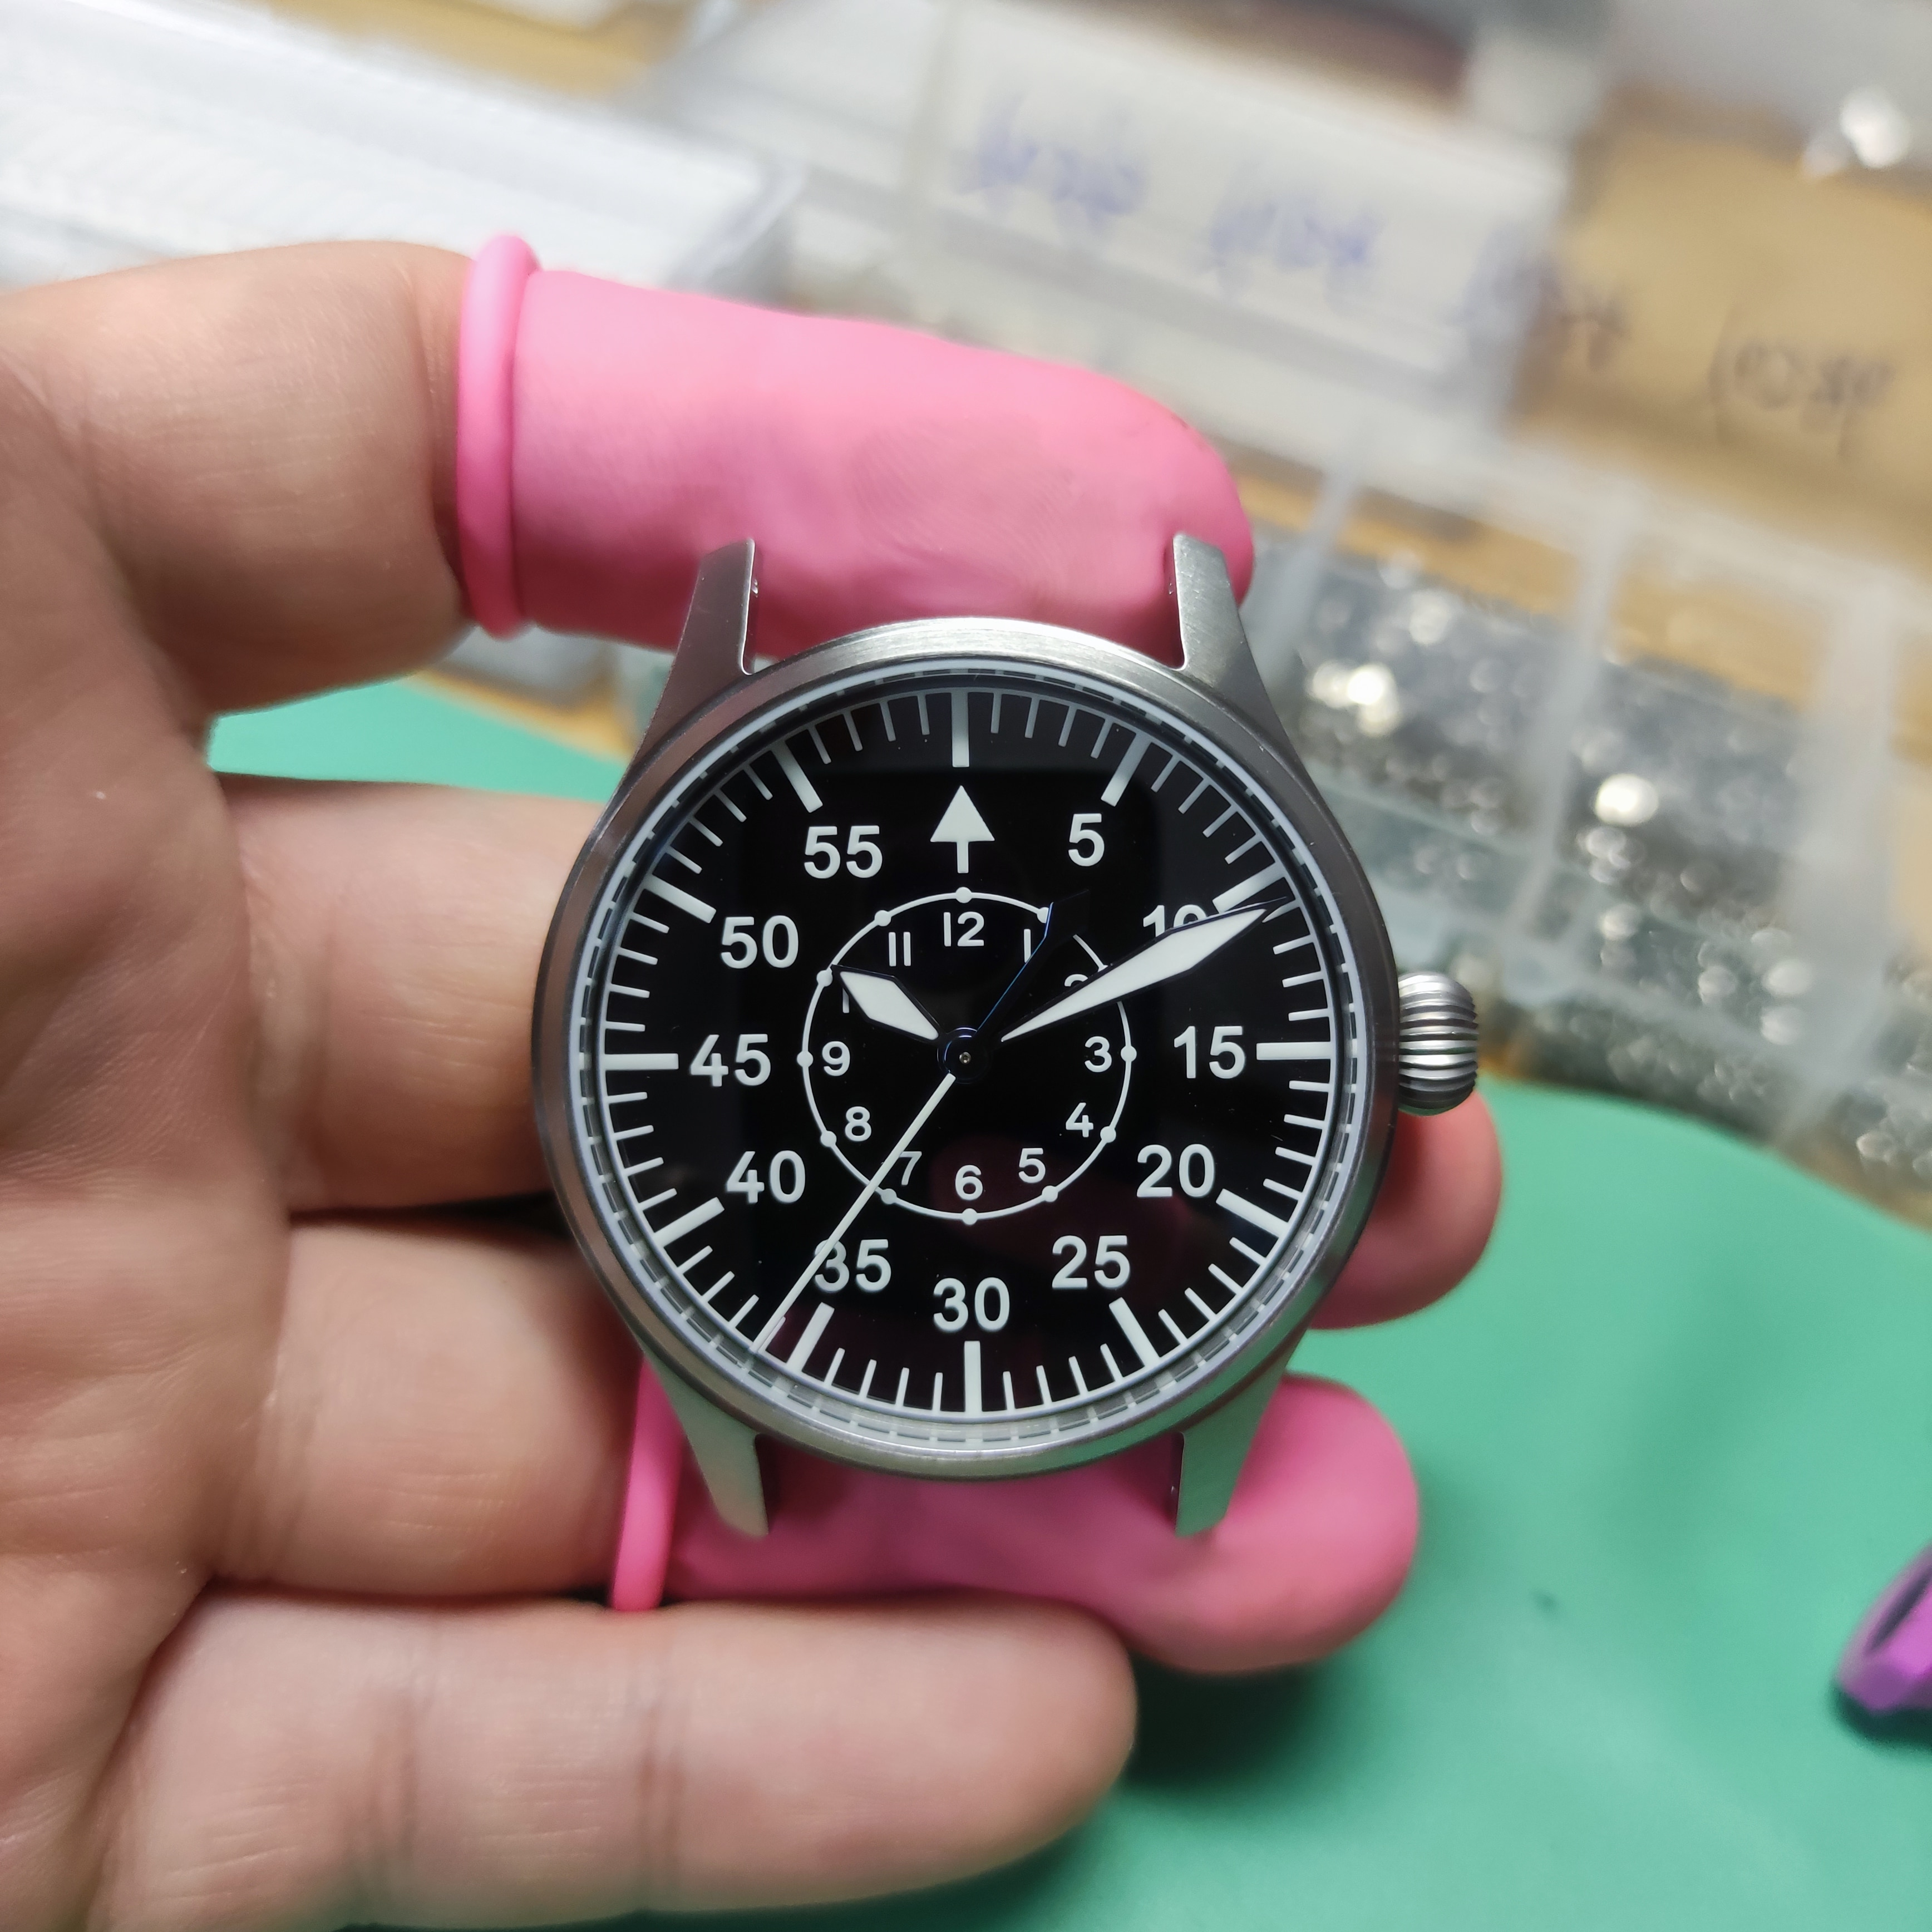 【Escapement Time】Automatic PT5000 Movement Pilot Watch with Type-B  Black Dial and 40mm Case wat